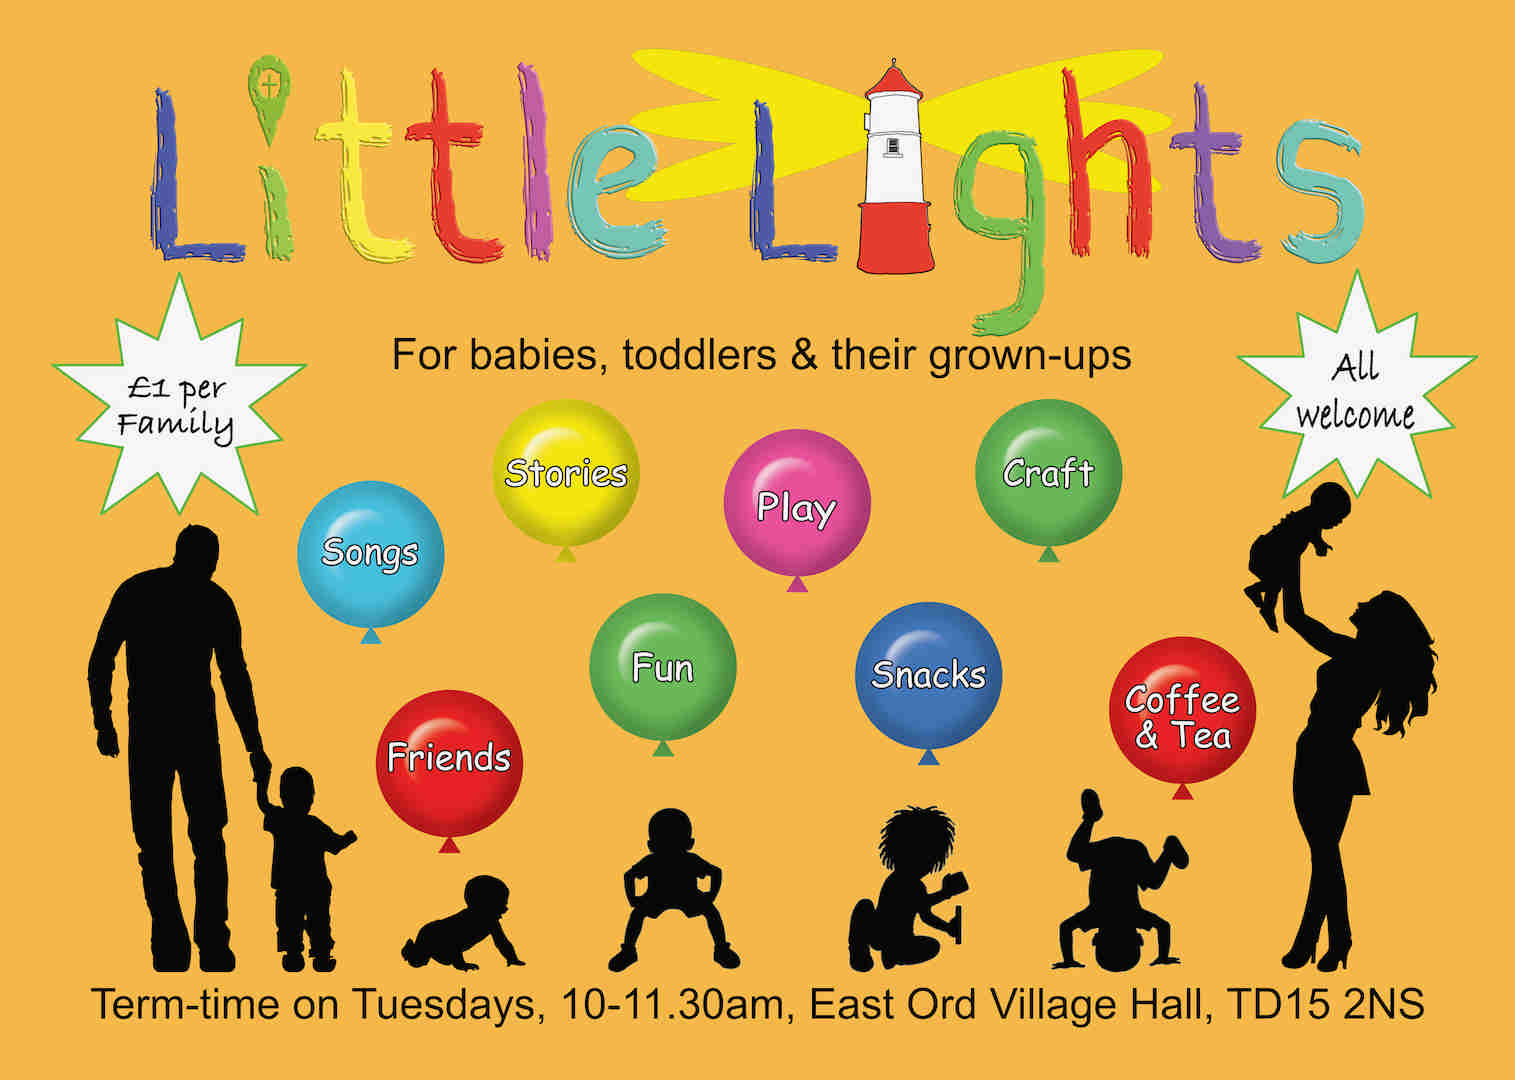 Little Lights Baby & Toddler group, Berwick Upon Tweed, East Ord Village Hall, TD15 2NS